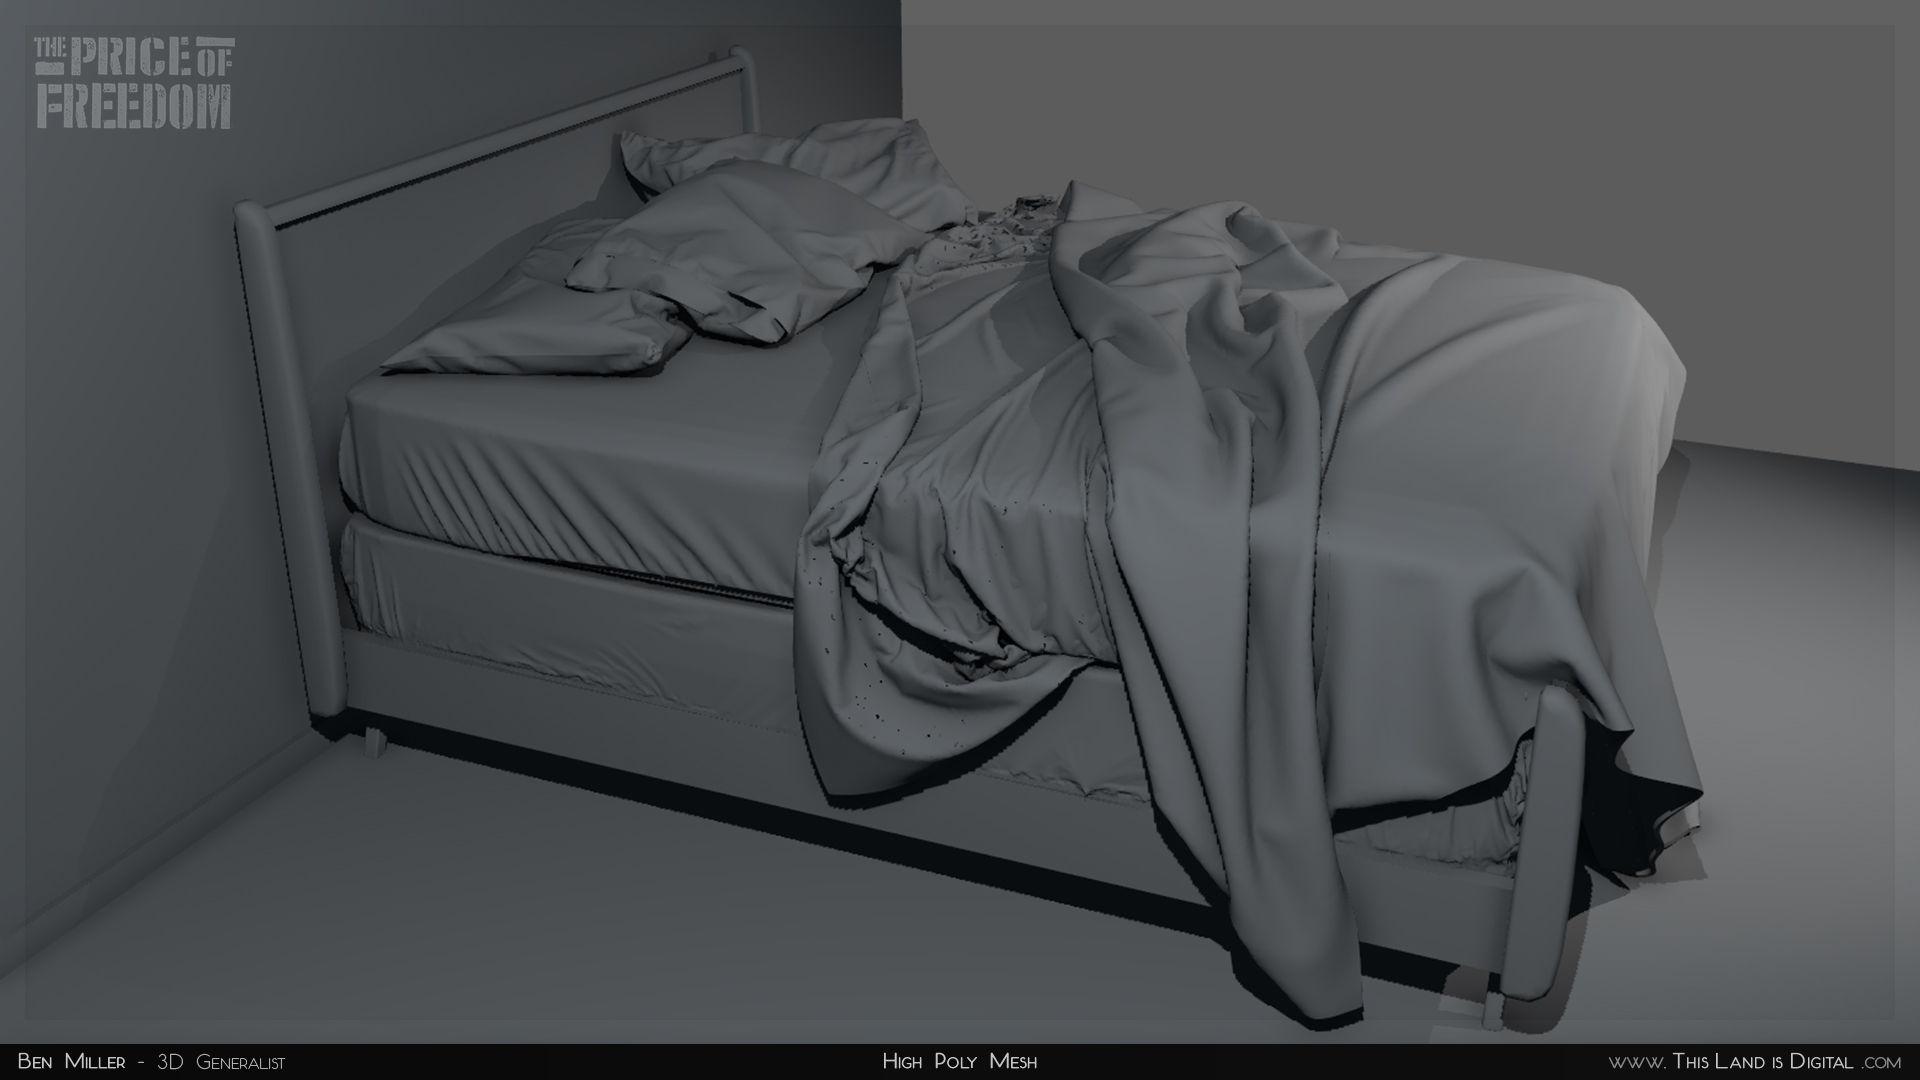 TLiD_MessyBed_05-HighPoly.jpg